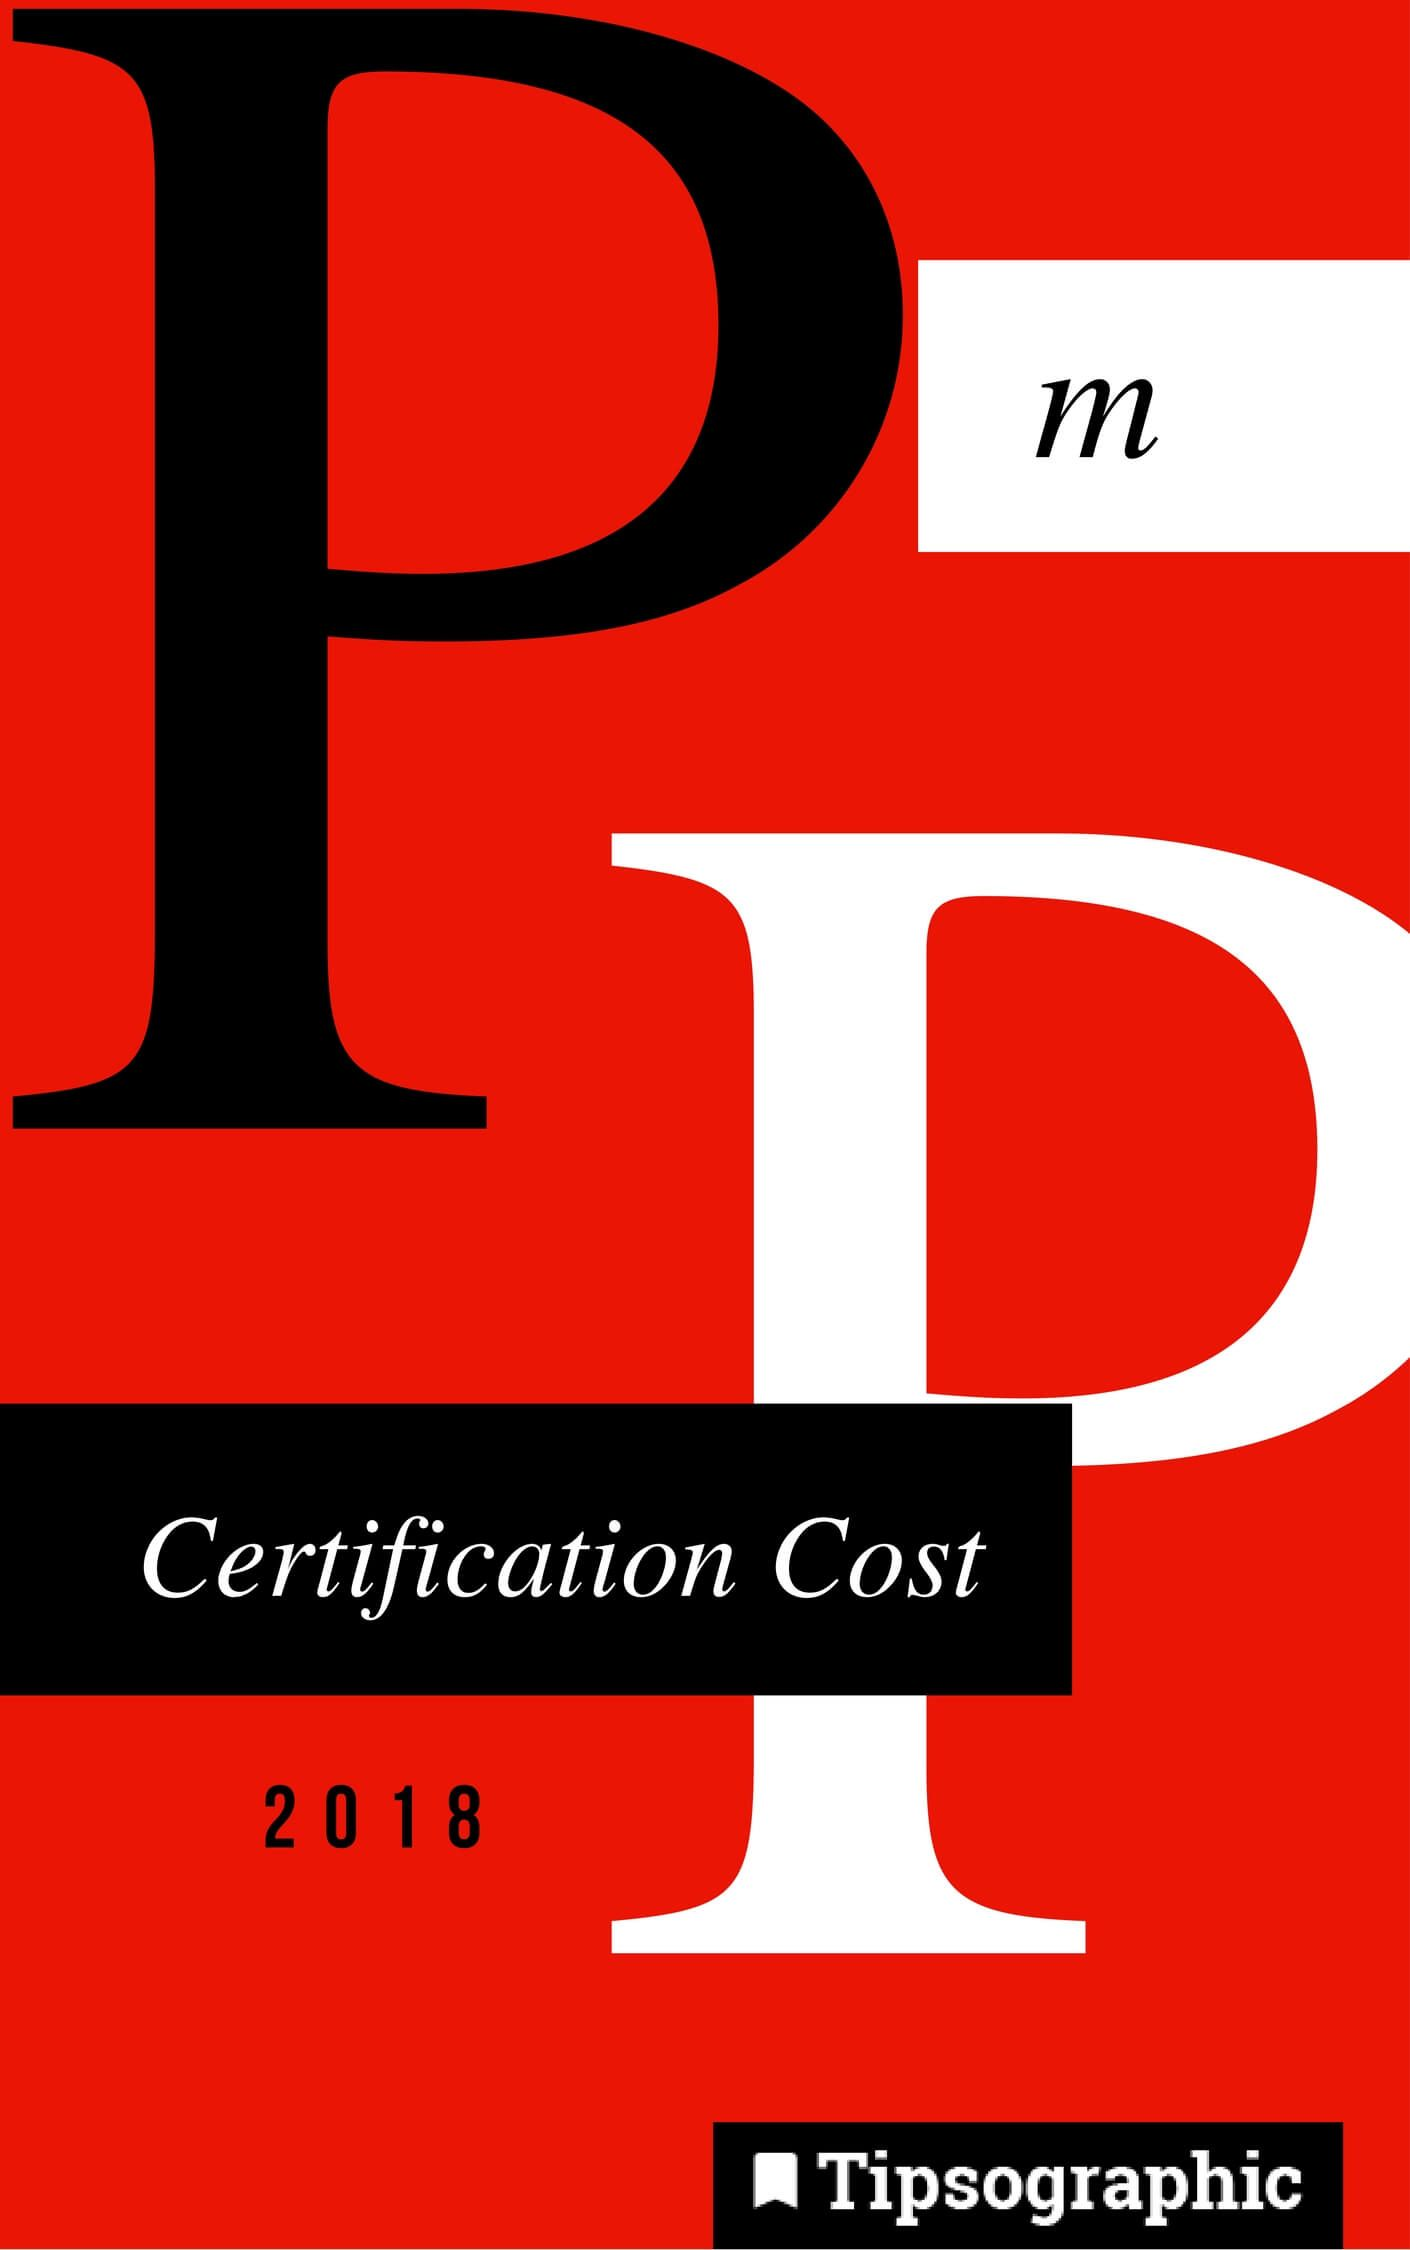 pmp certification cost 2018 tipsographic main